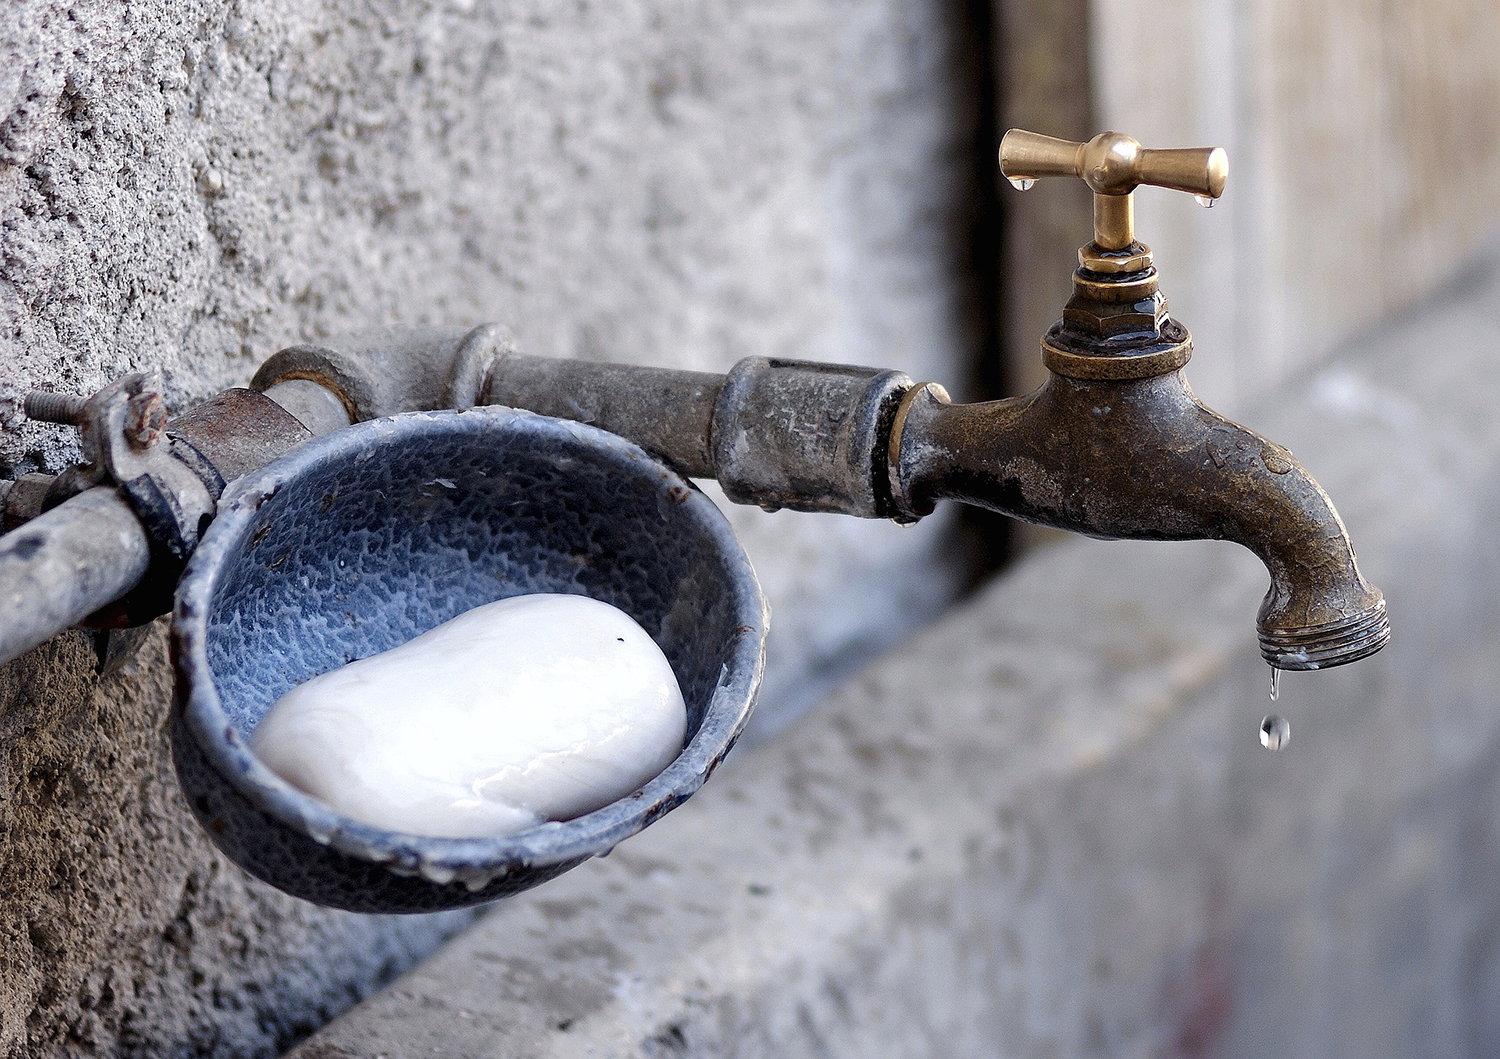 water infrastructure in South Africa Image by Susanne Jutzeler, suju-foto from Pixabay